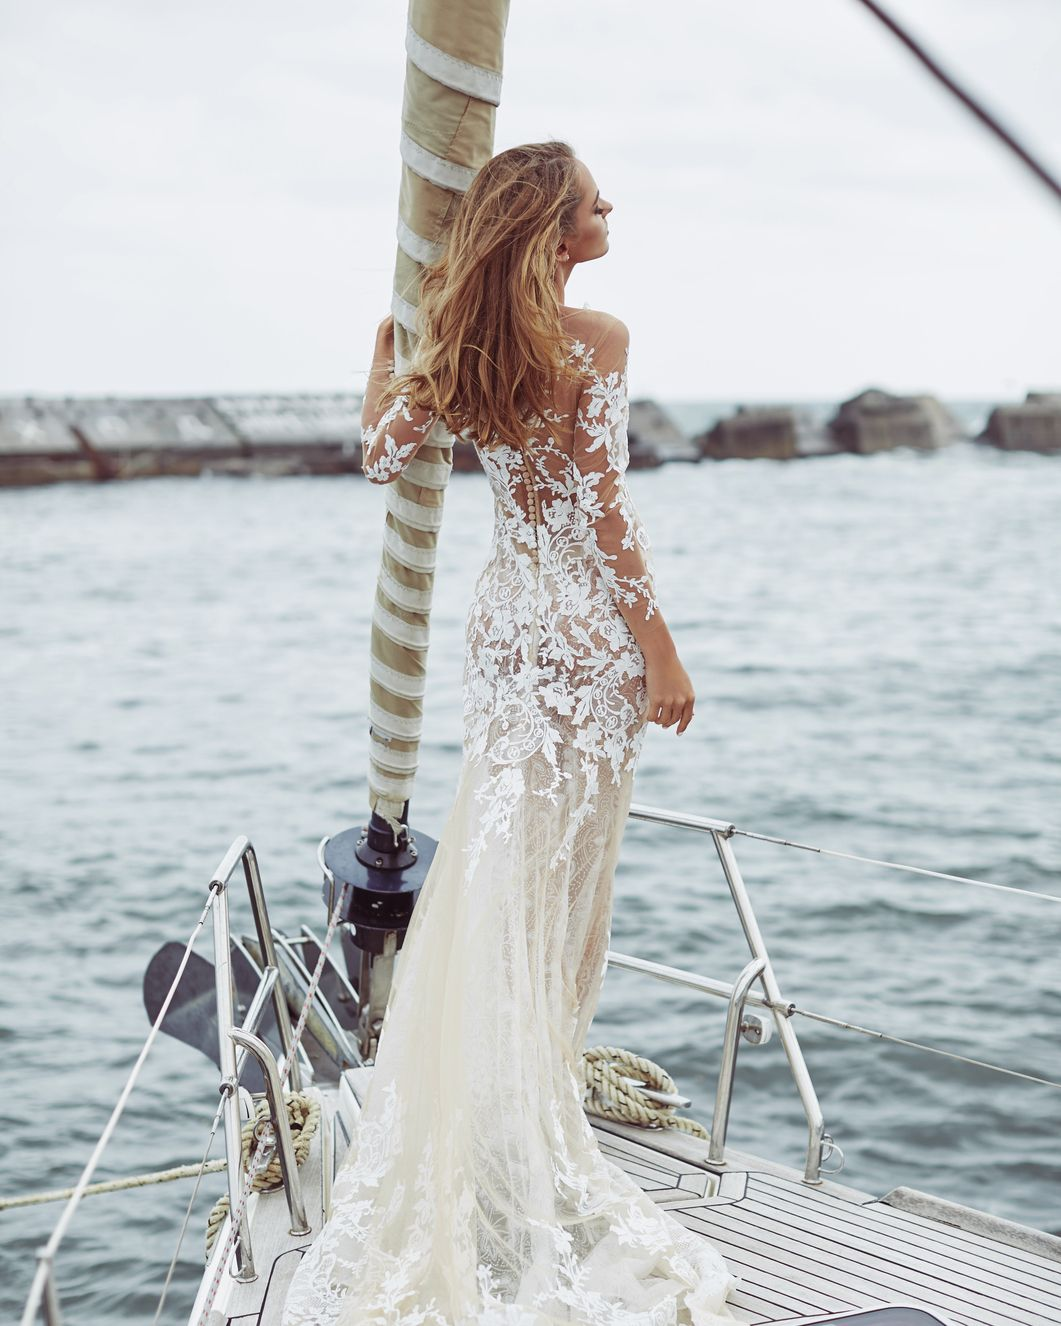 7376ccb4b28e3 It's your moment. >>> Discover #DOMINISS 2019 Collection by  @dominiss_official #wedding #weddingstyle #weddingpictures